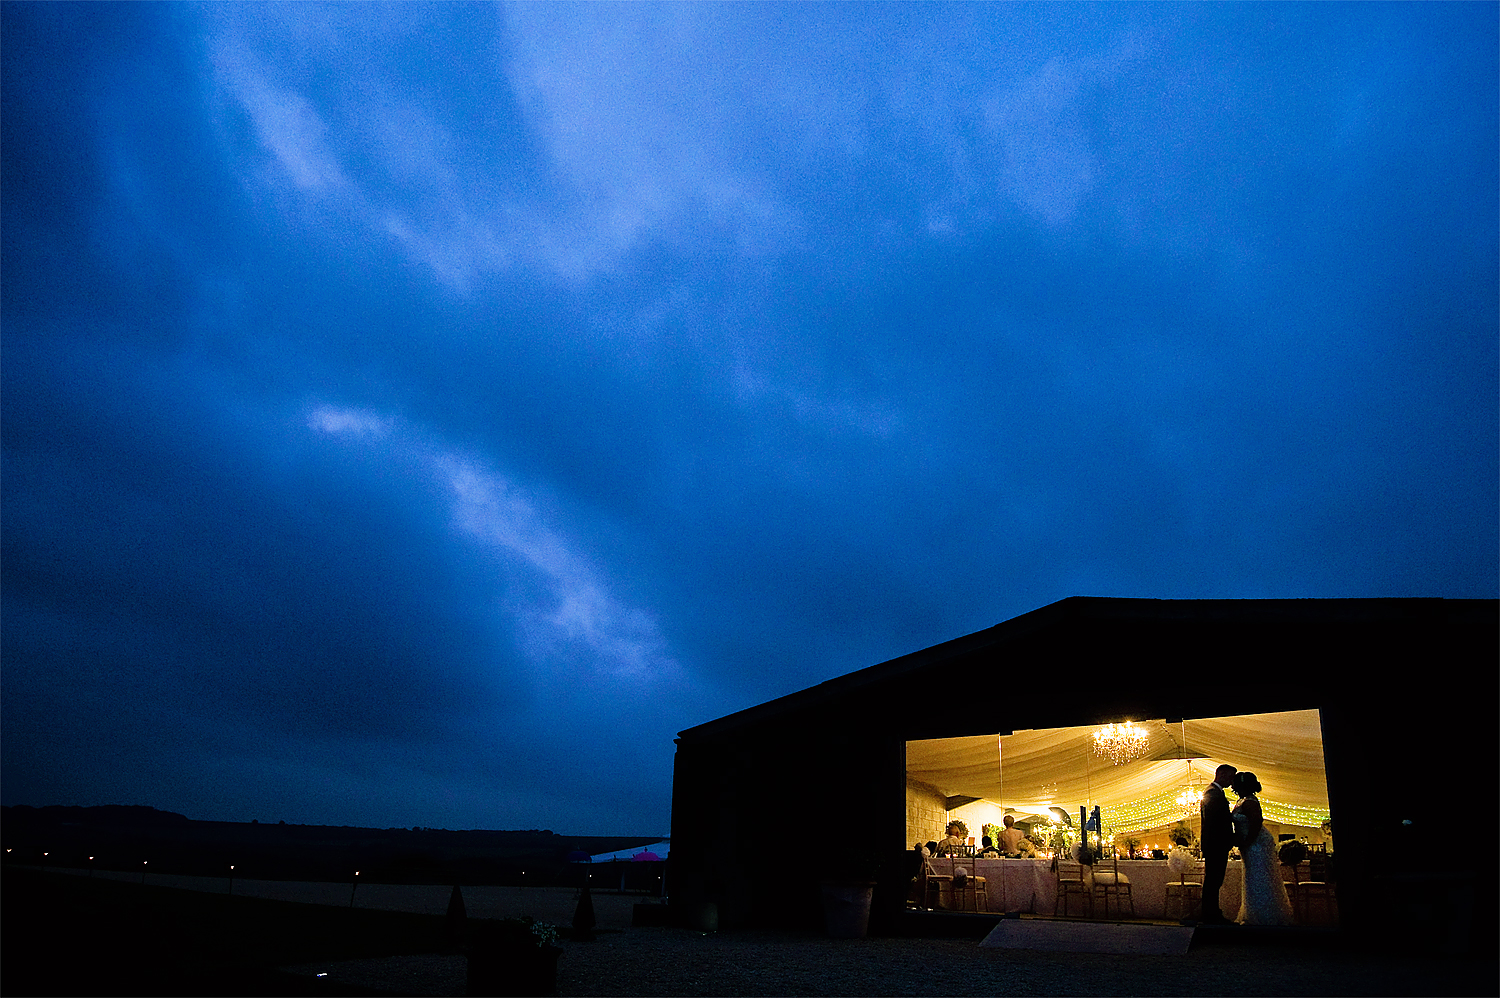 Silhouette of bride and groom in barn at Axnoller Farm weding in Dorset